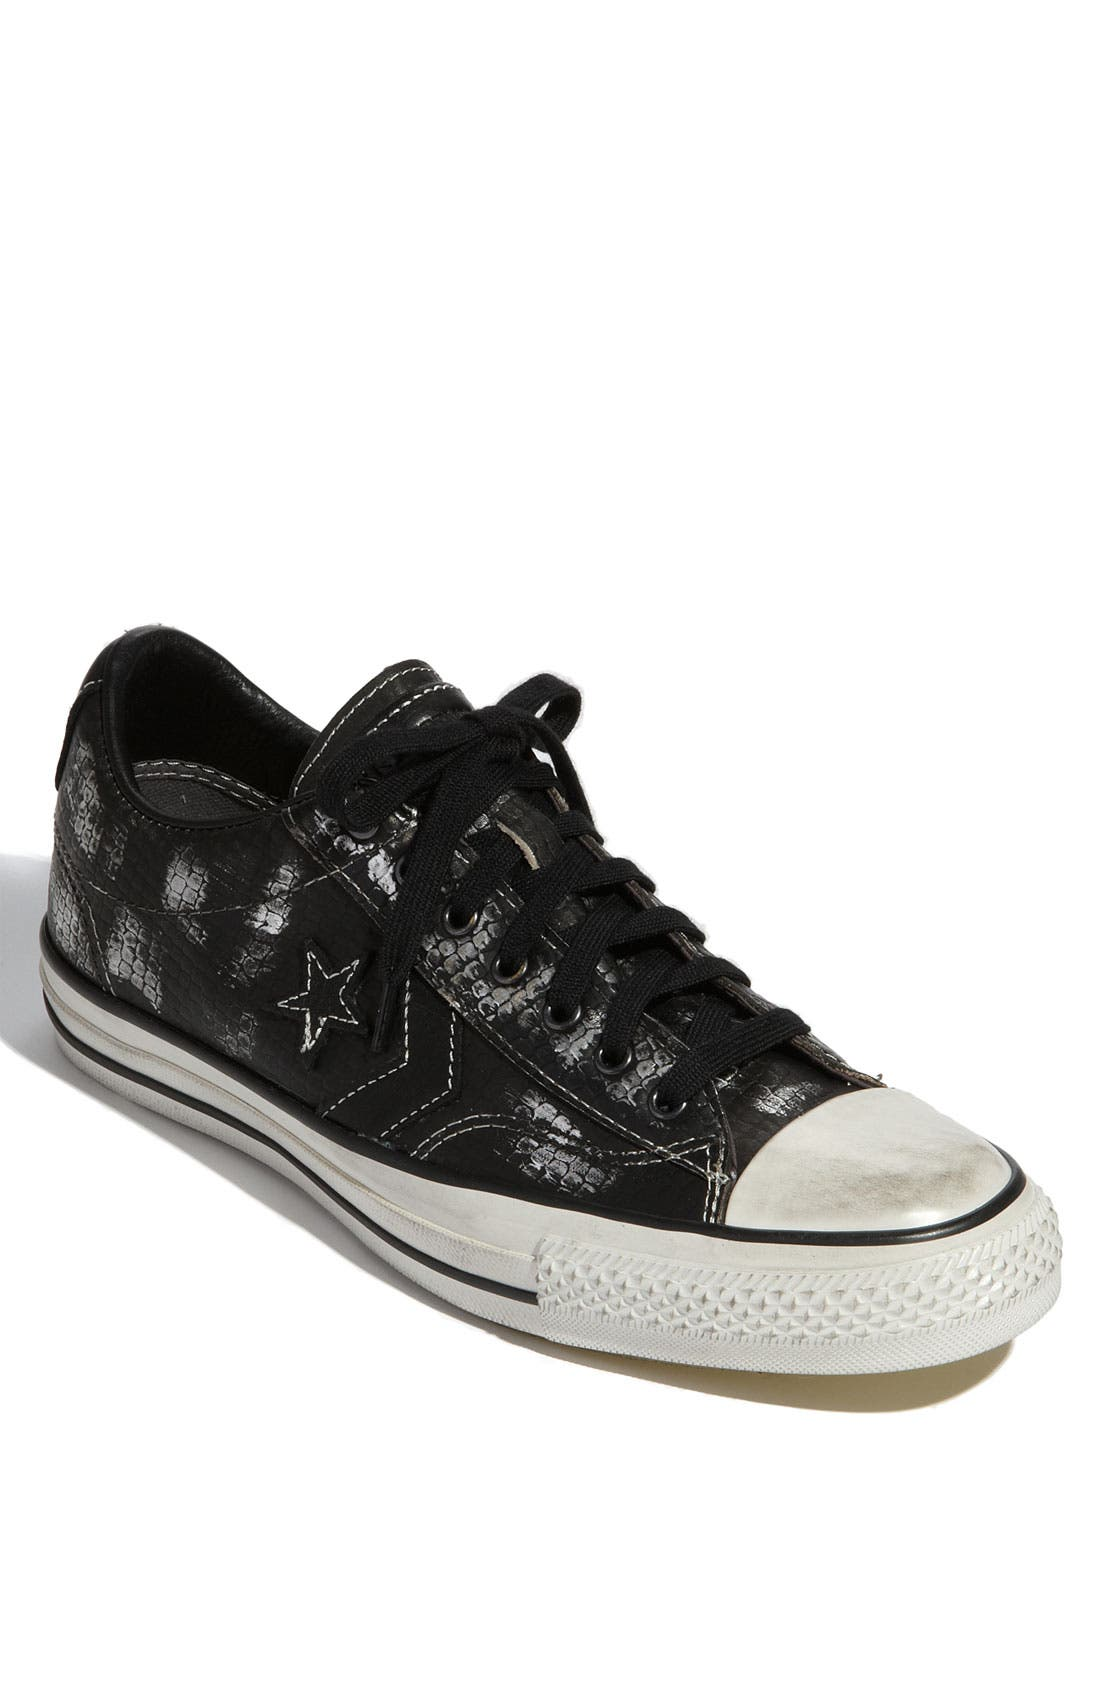 Alternate Image 1 Selected - Converse by John Varvatos 'Star Player' Sneaker